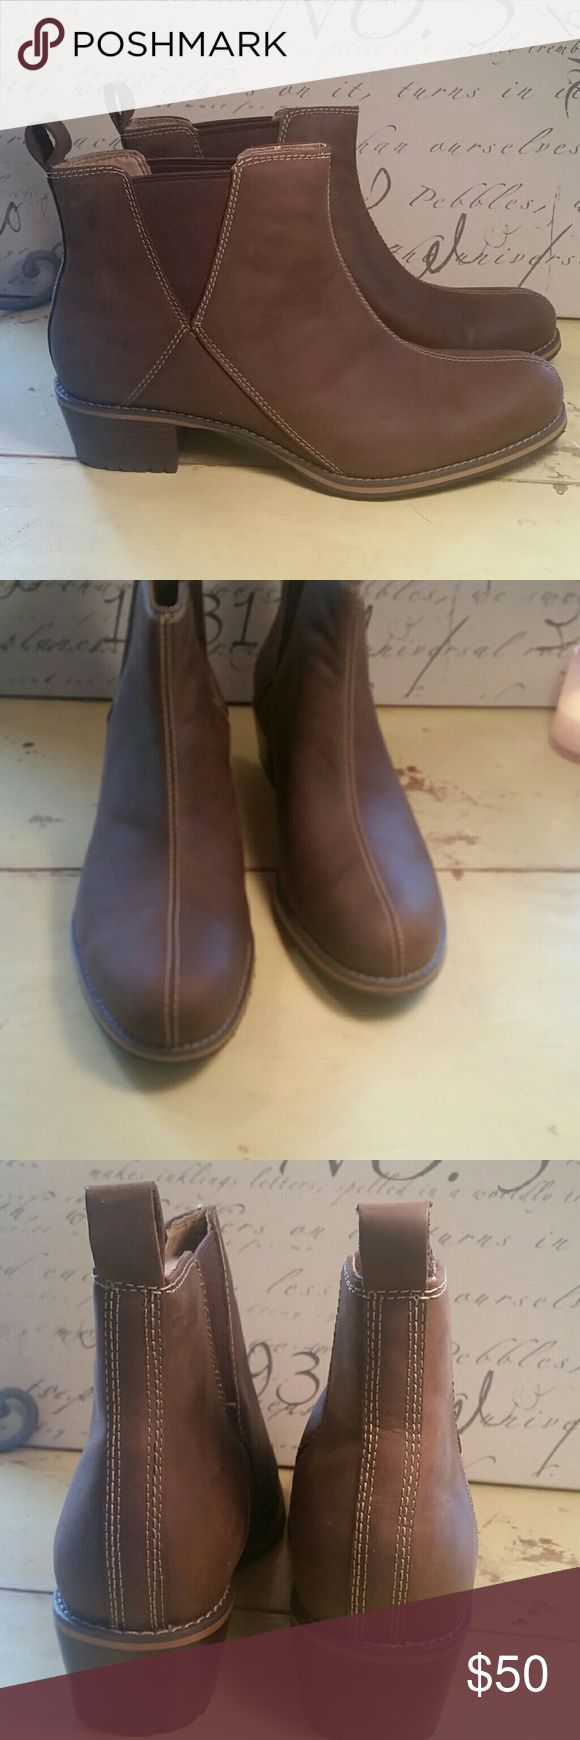 Woman's Brown Leather Boots,  size 12 Woman's Brown leather boots, size 12, new, never worn.   Very good quality boot, well-made. Red Wing Shoes Shoes Ankle Boots & Booties